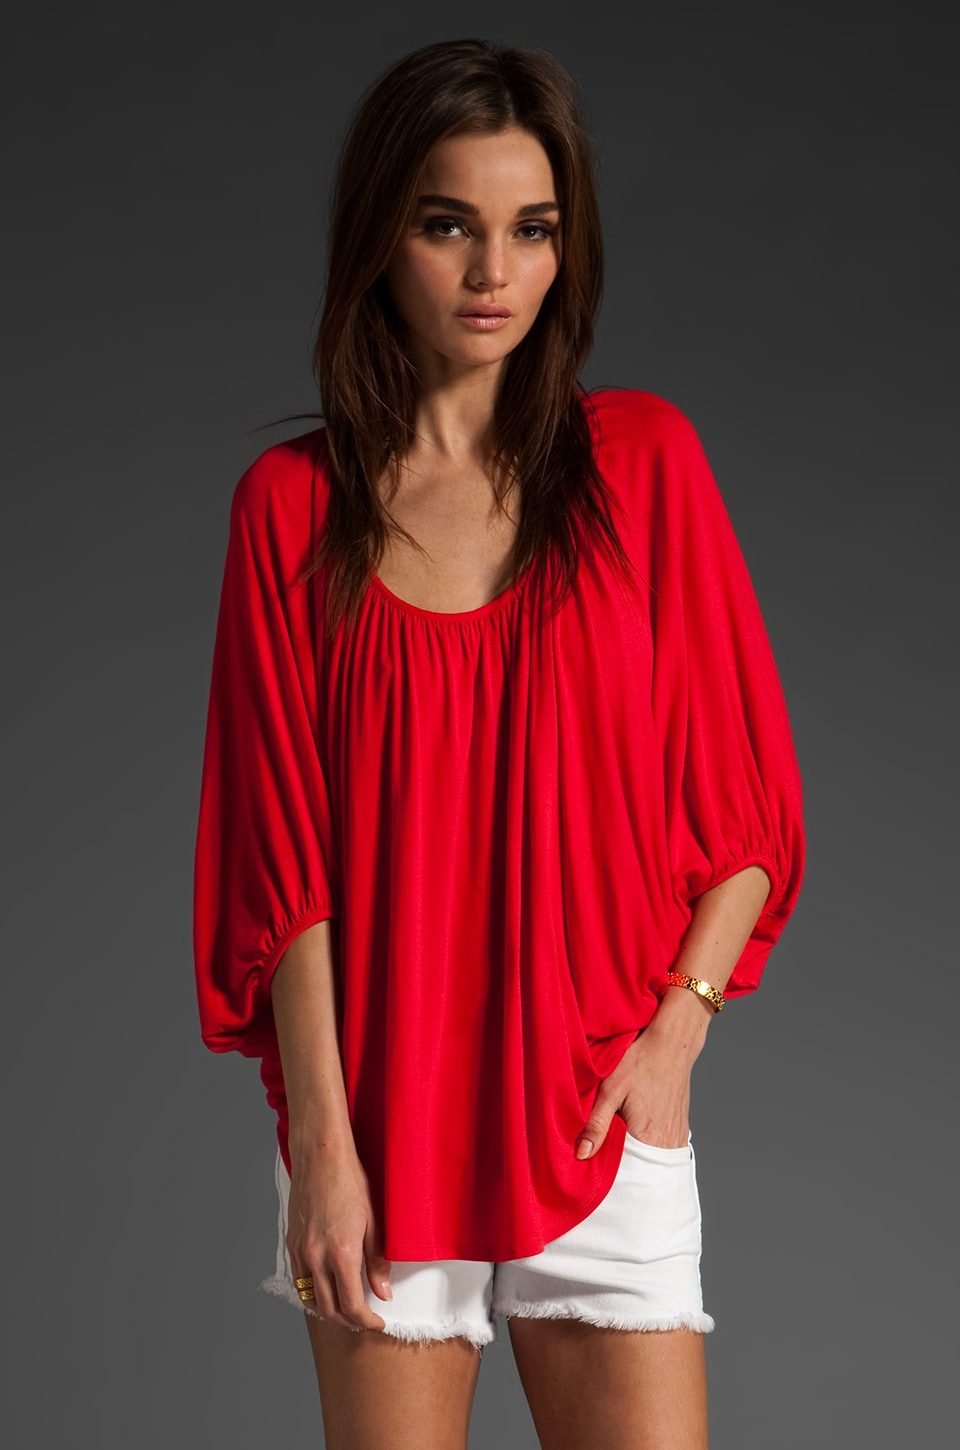 James & Joy James Dolman Sleeve Top in Red